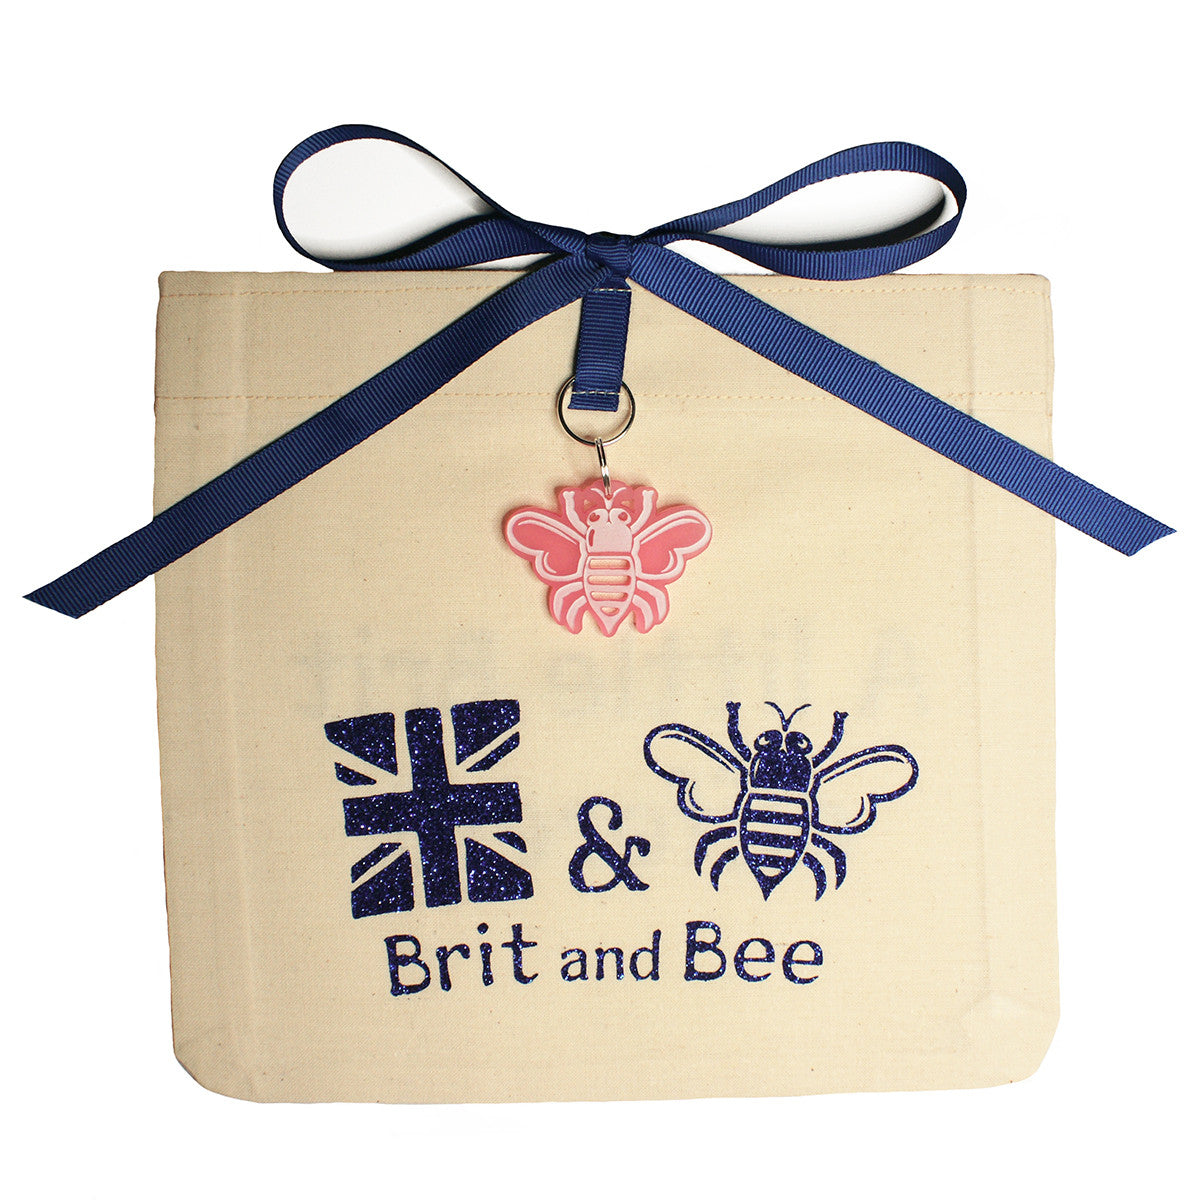 Brit and Bee Sorority Lil' Decal - Delta Gamma